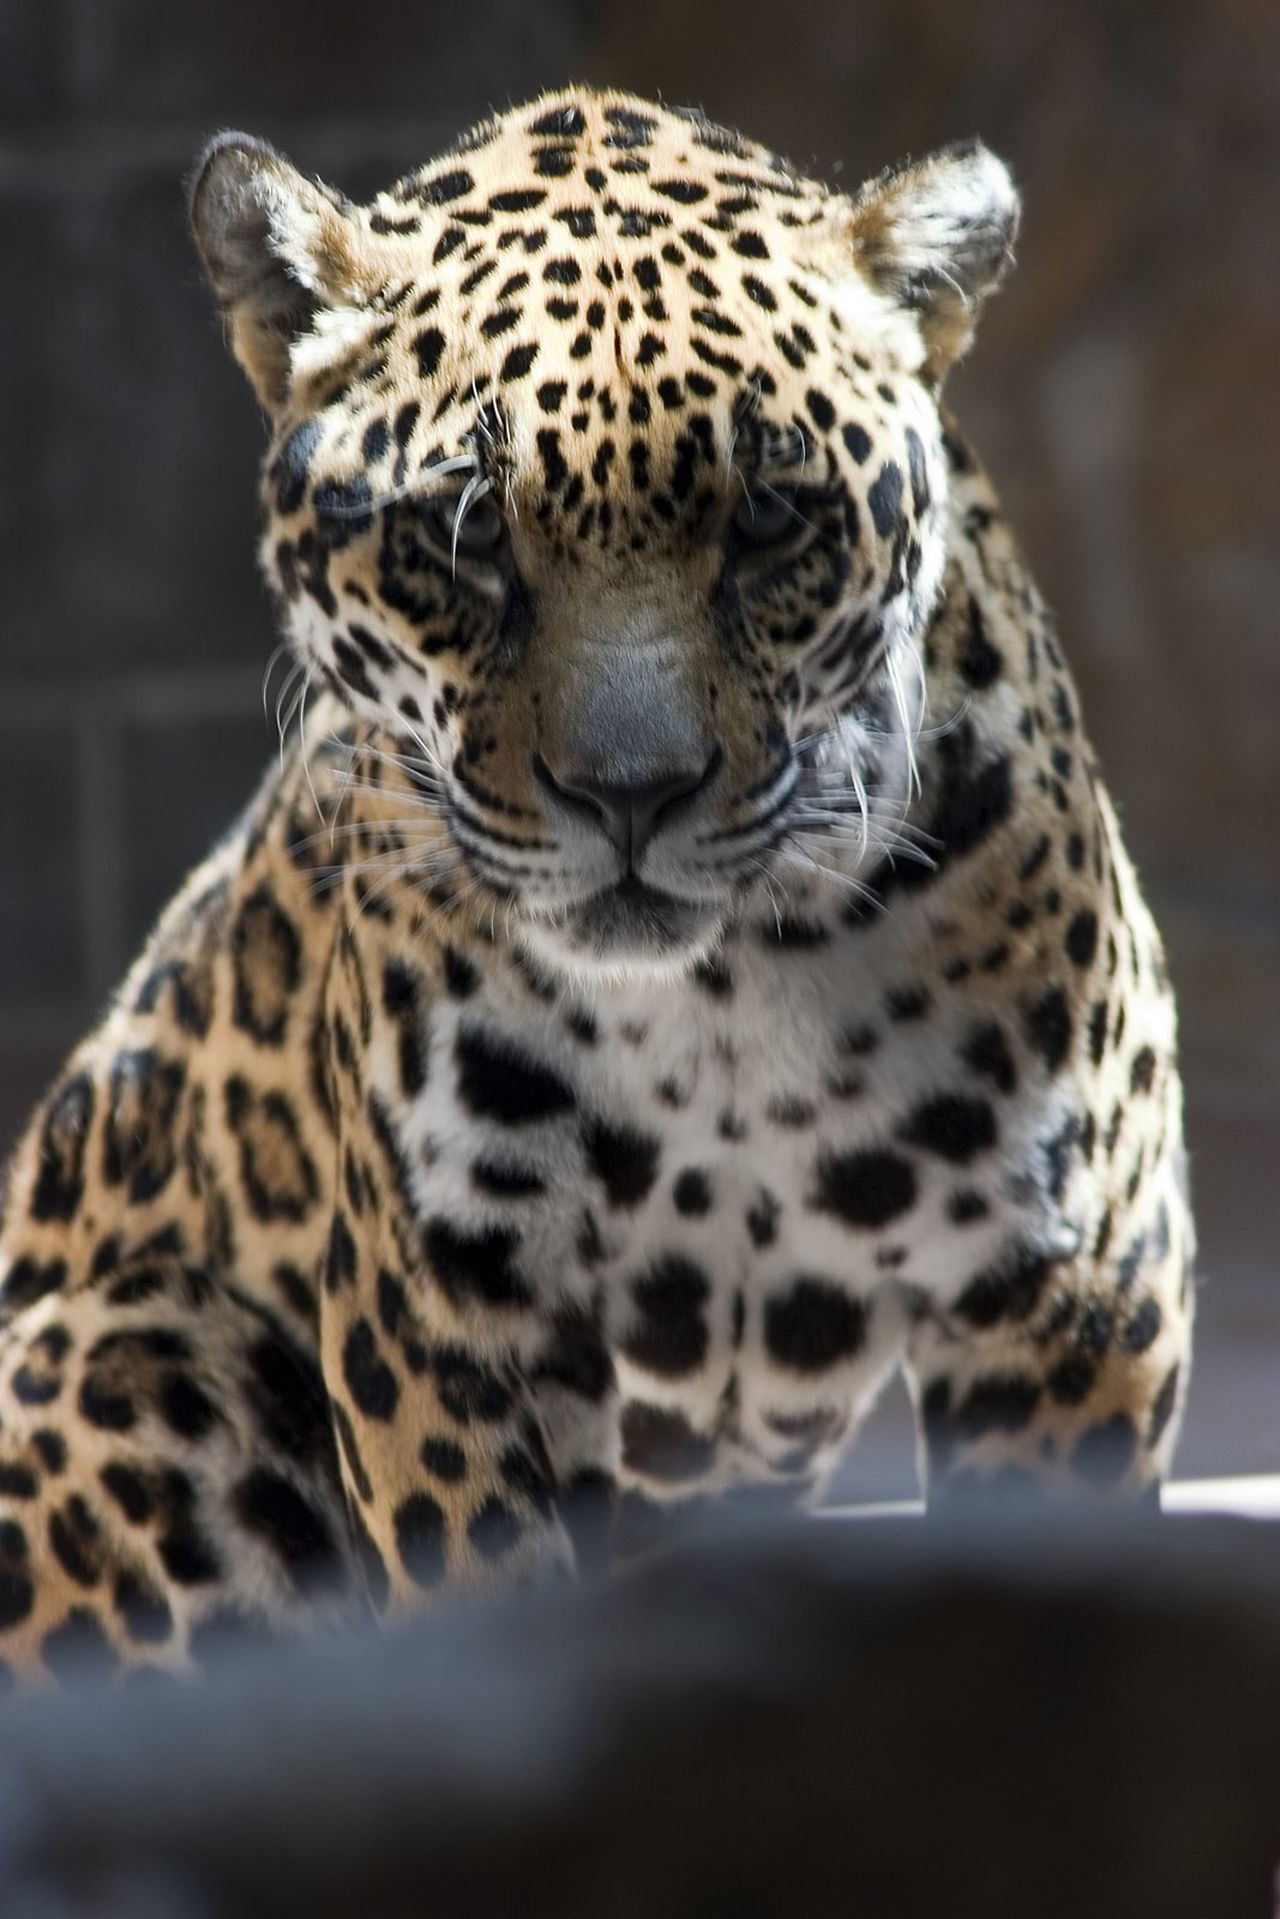 Animal Themes Animals In The Wild Close-up Day Leopard Mammal Nature No People One Animal Outdoors Spotted